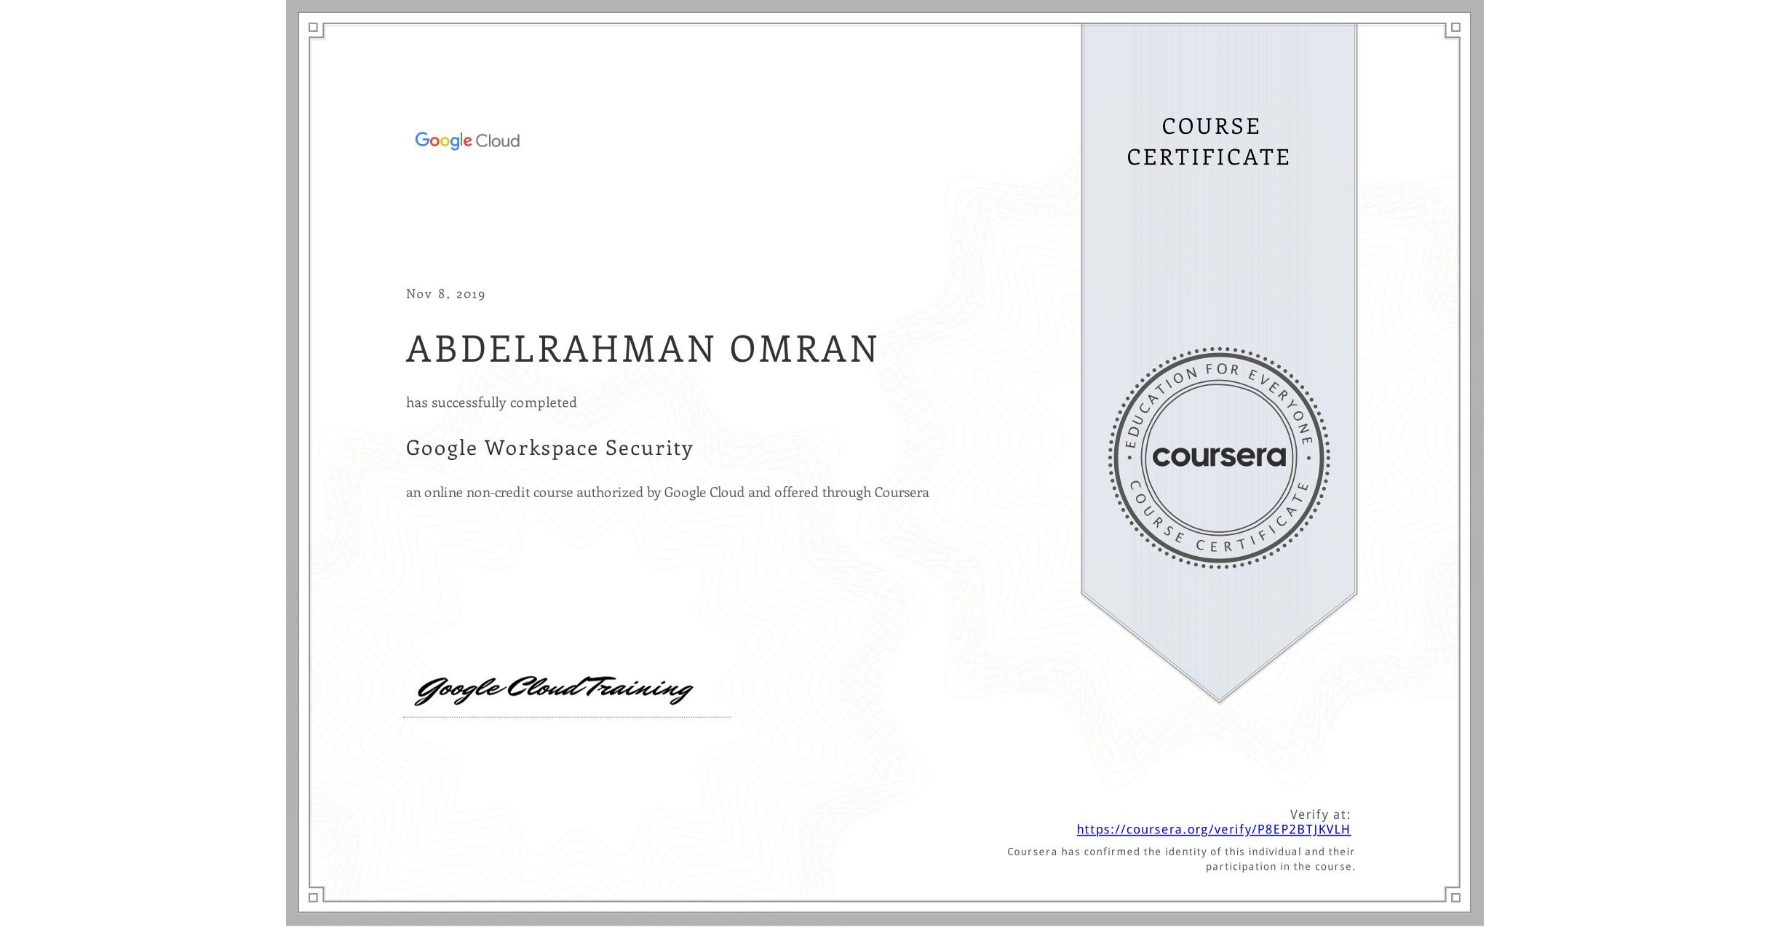 View certificate for ABDELRAHMAN OMRAN, Google Workspace Security, an online non-credit course authorized by Google Cloud and offered through Coursera